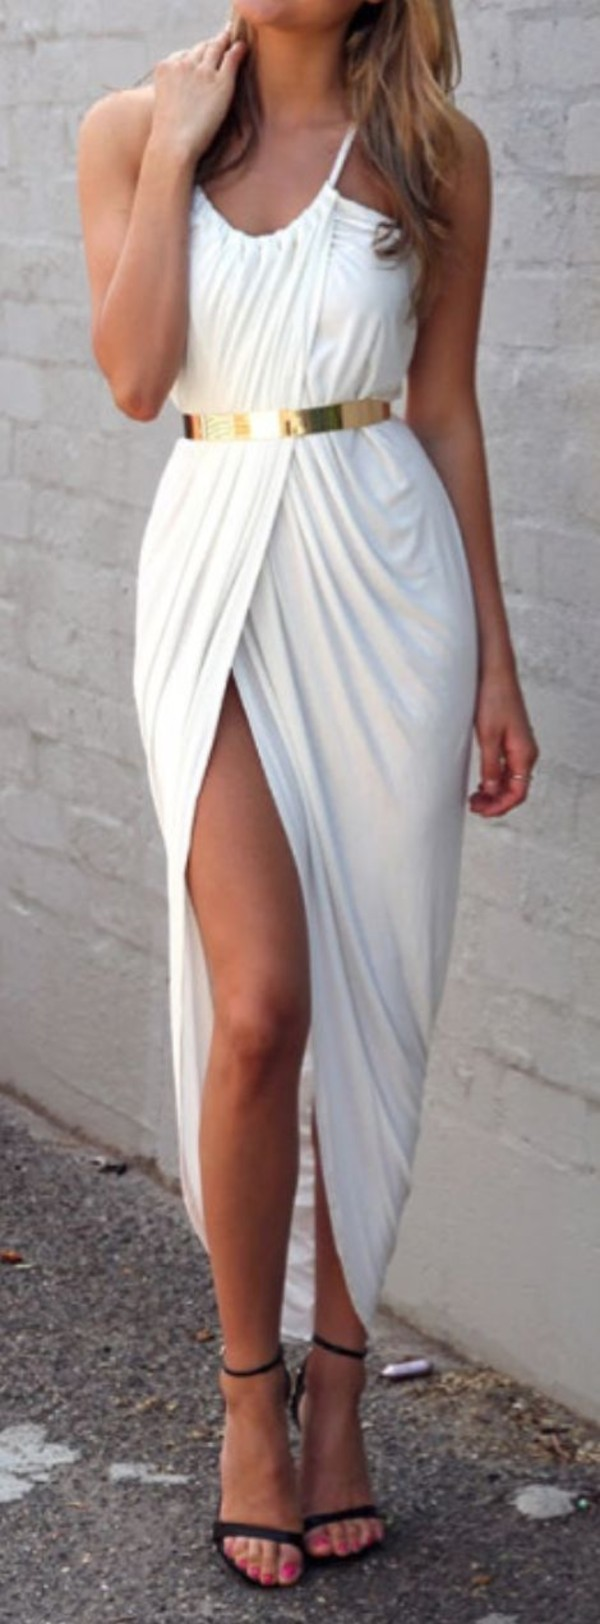 dress white white dress sexy slit blue blue dress belt greek goddess slit dress draped dress draped grecian maxi dress maxi greek gold belt maxi dress spring tuliphem tulip dress midi dress grecian dress white maxi dress grecian toga dress want love white maxi goddess dress with gold belt cute gold summer cute dress long dress white dress long cute long white long dress white long dress open leg summer dress slit white dress flowy cute class girly women classy ebonylace.storenvy asymmetrical gold sequins belt dress gold ring godess summer shorts summer outfits drapped glamgerous asymmetrical dress flowy dress sexy dress store colorful slit dress sleeveless dress leg slits gold belt dress red dress red dress with slit dress greece grecian wrap dress greek style long dress front split long white dres front split  dress maxi dress beautiful halo white long dress belted dress